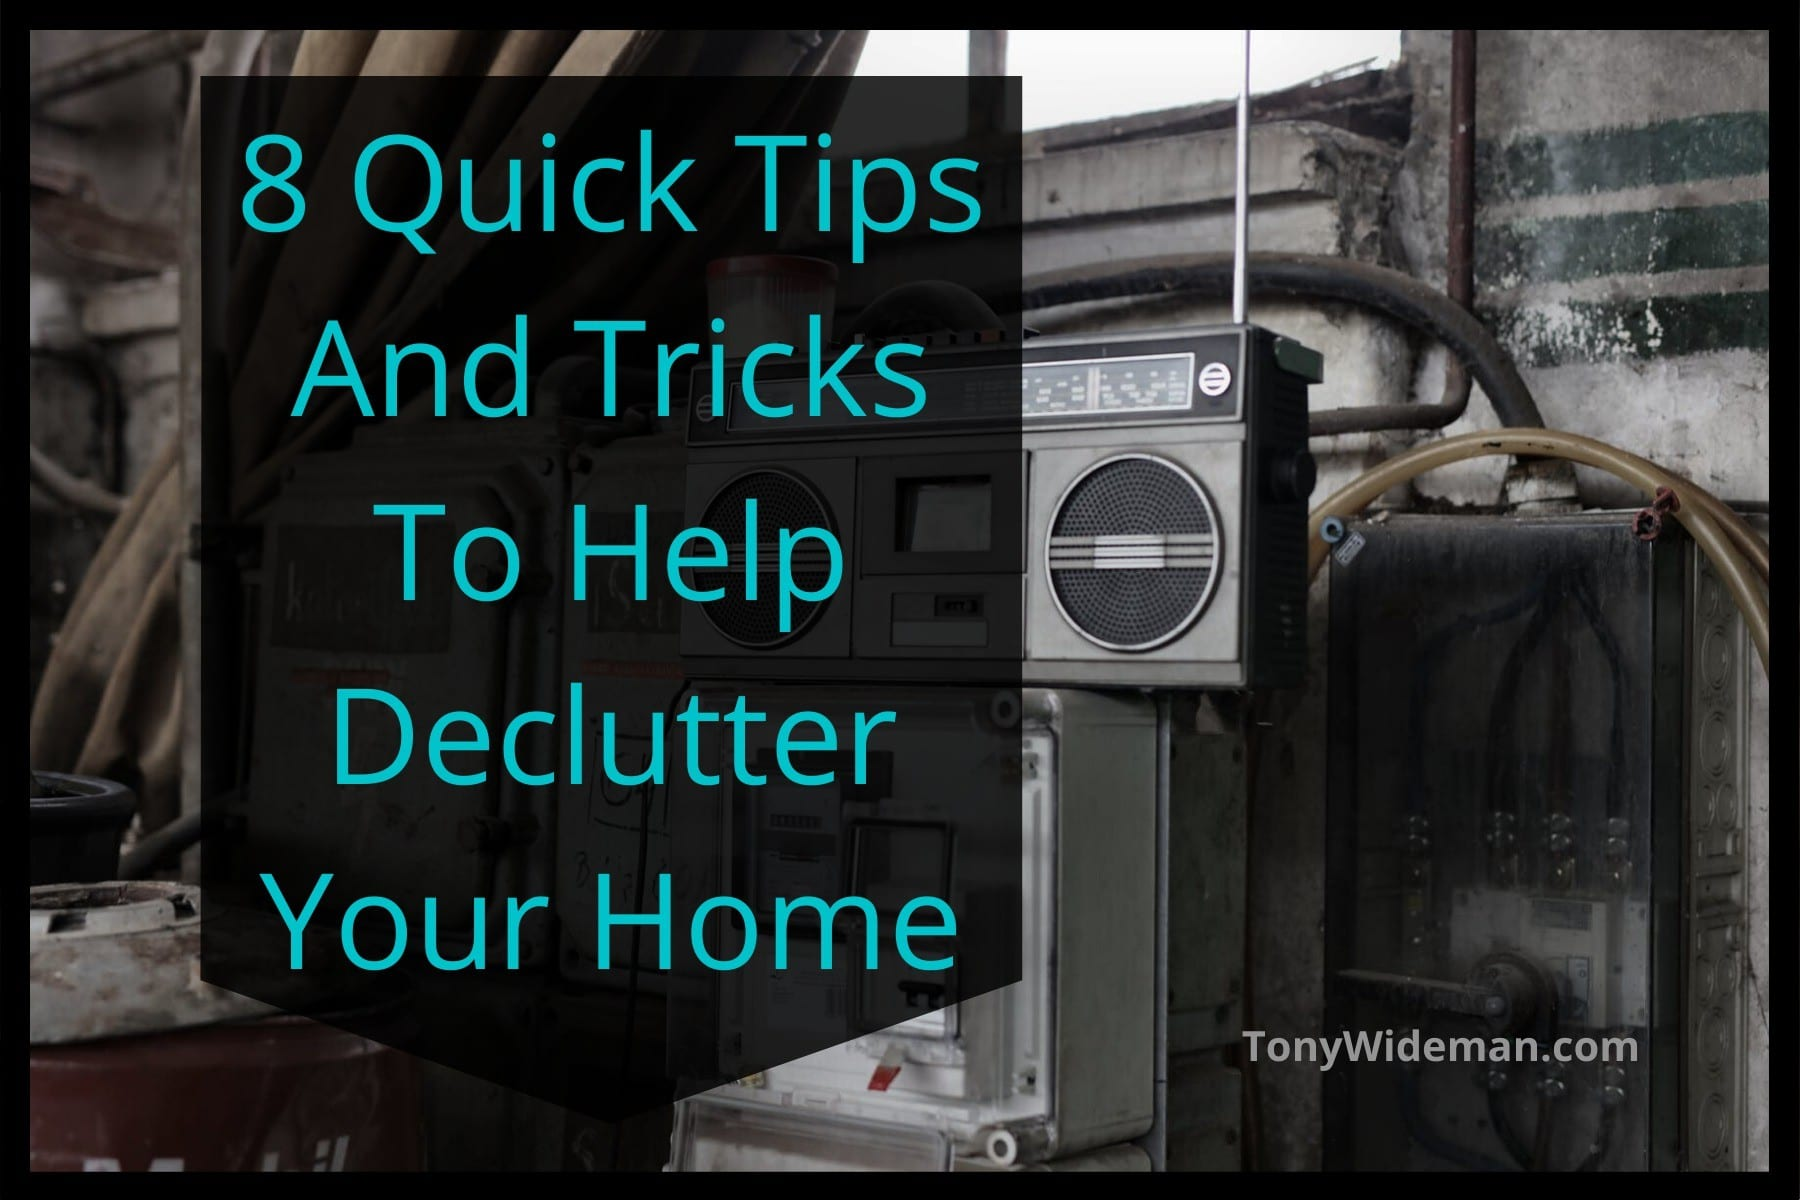 8 Quick Tips And Tricks To  Help Declutter Your Home